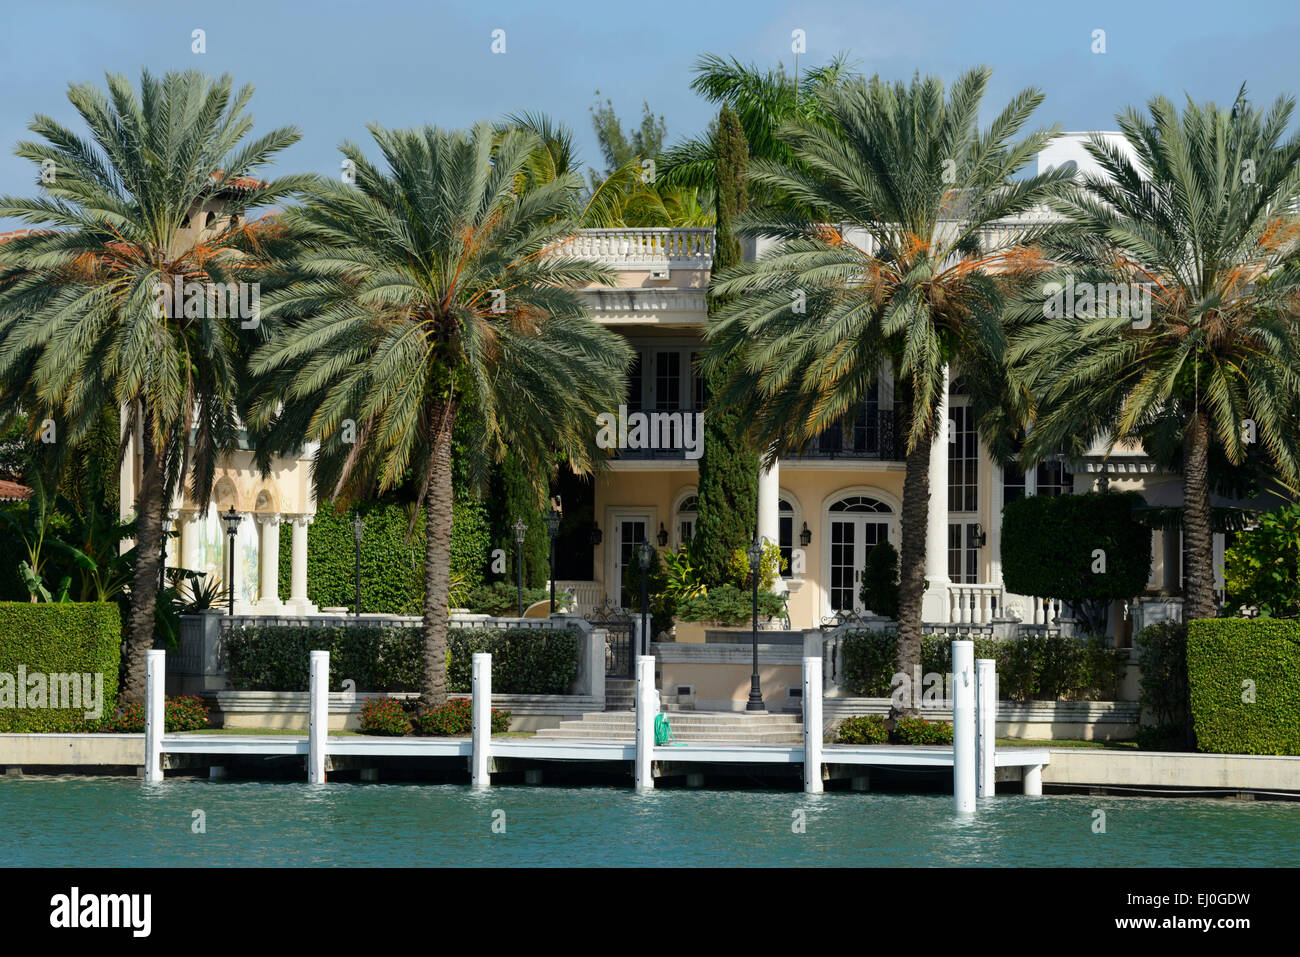 USA, Florida, Dade County, Miami Beach, mansion on waterfront with palm trees, - Stock Image